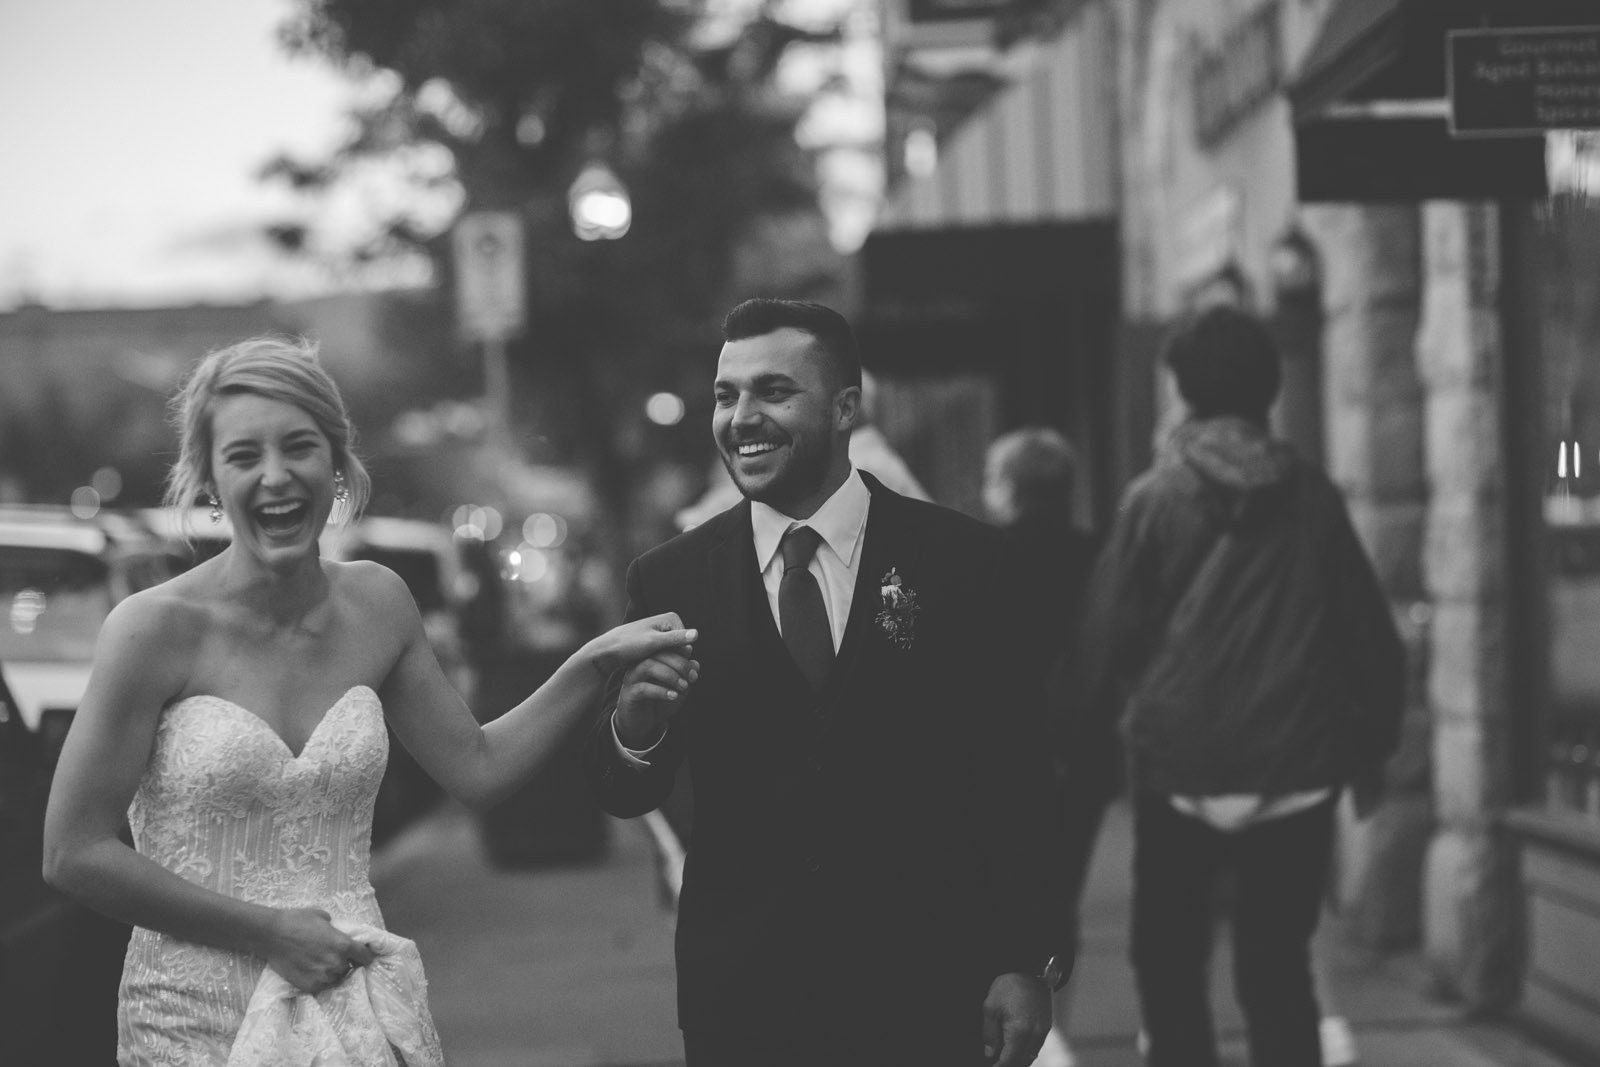 189-beautiful-bride-and-groom-photojournalist-portraits-at-elopement-wedding-in-durango-colorado-downtown